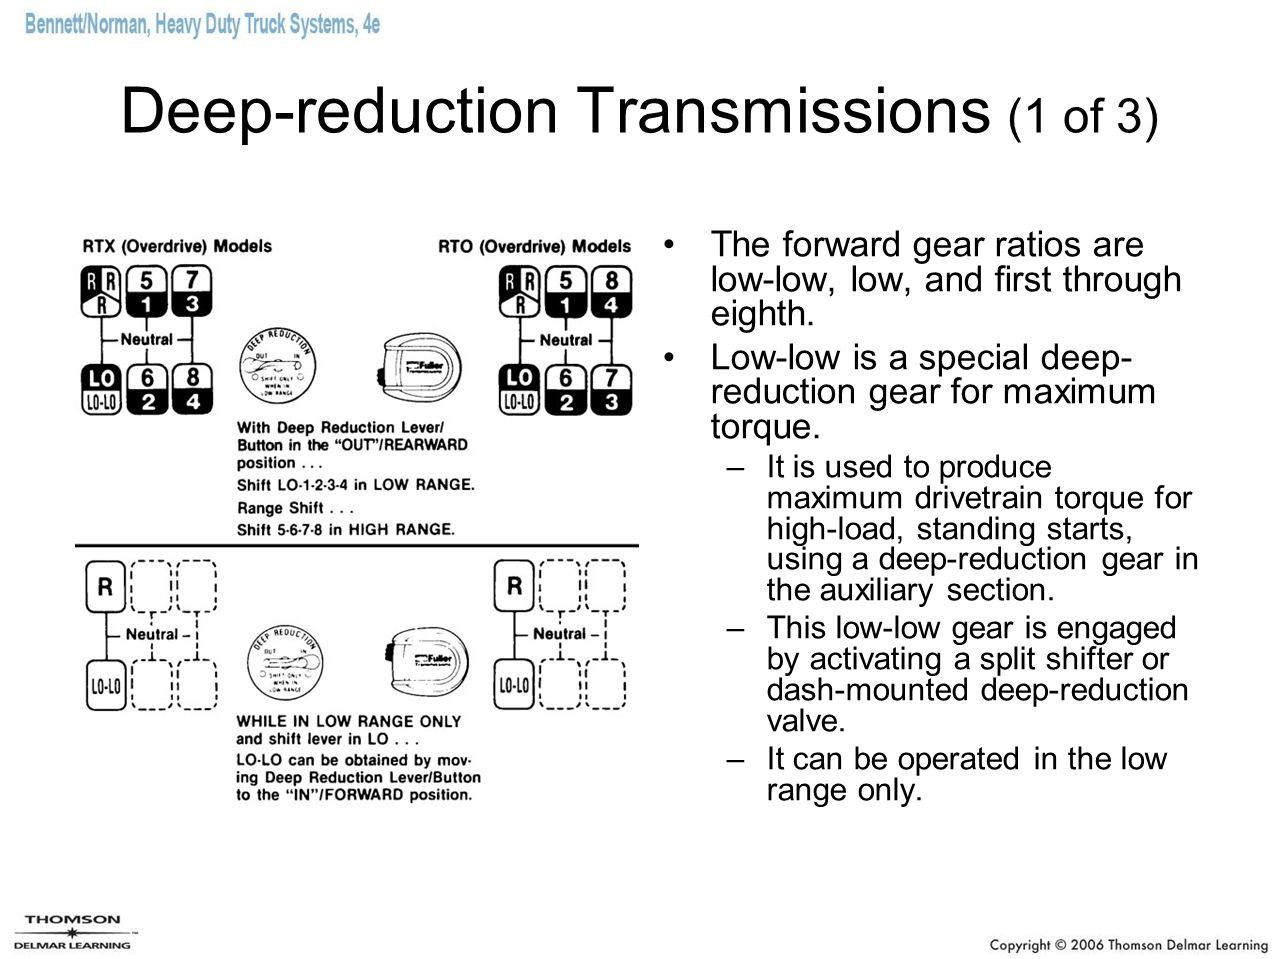 Deep-reduction Transmissions (1 of 3)